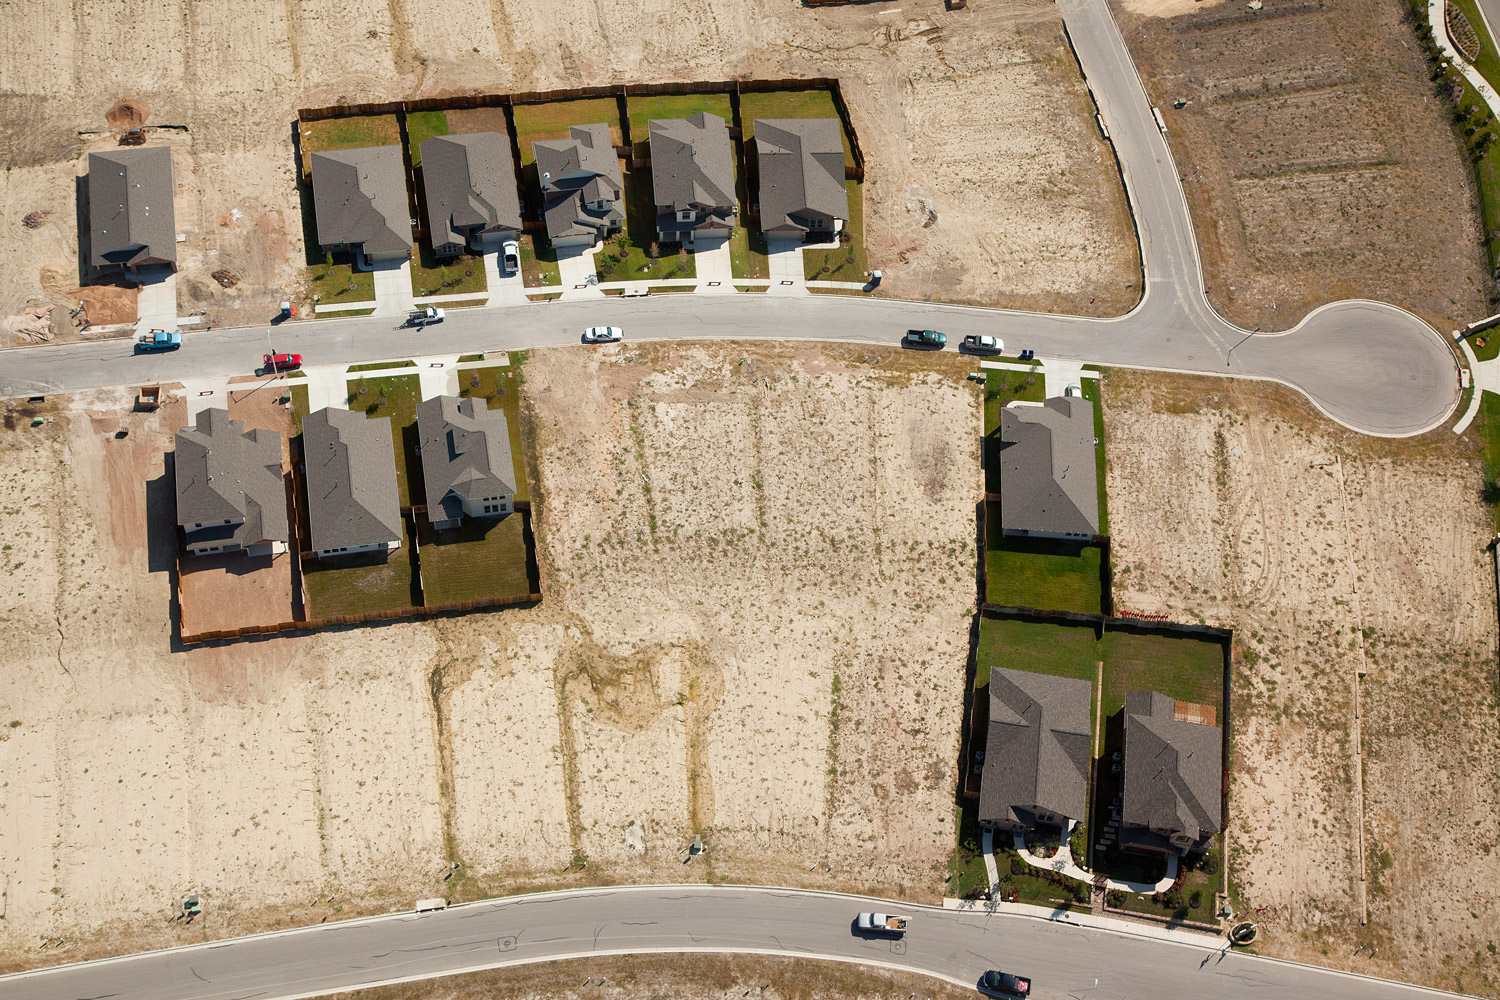 A few green lawns dot the dry landscape of this residential development located between Austin and San Antonio. Cities in the South are increasing restrictions on residential water use.